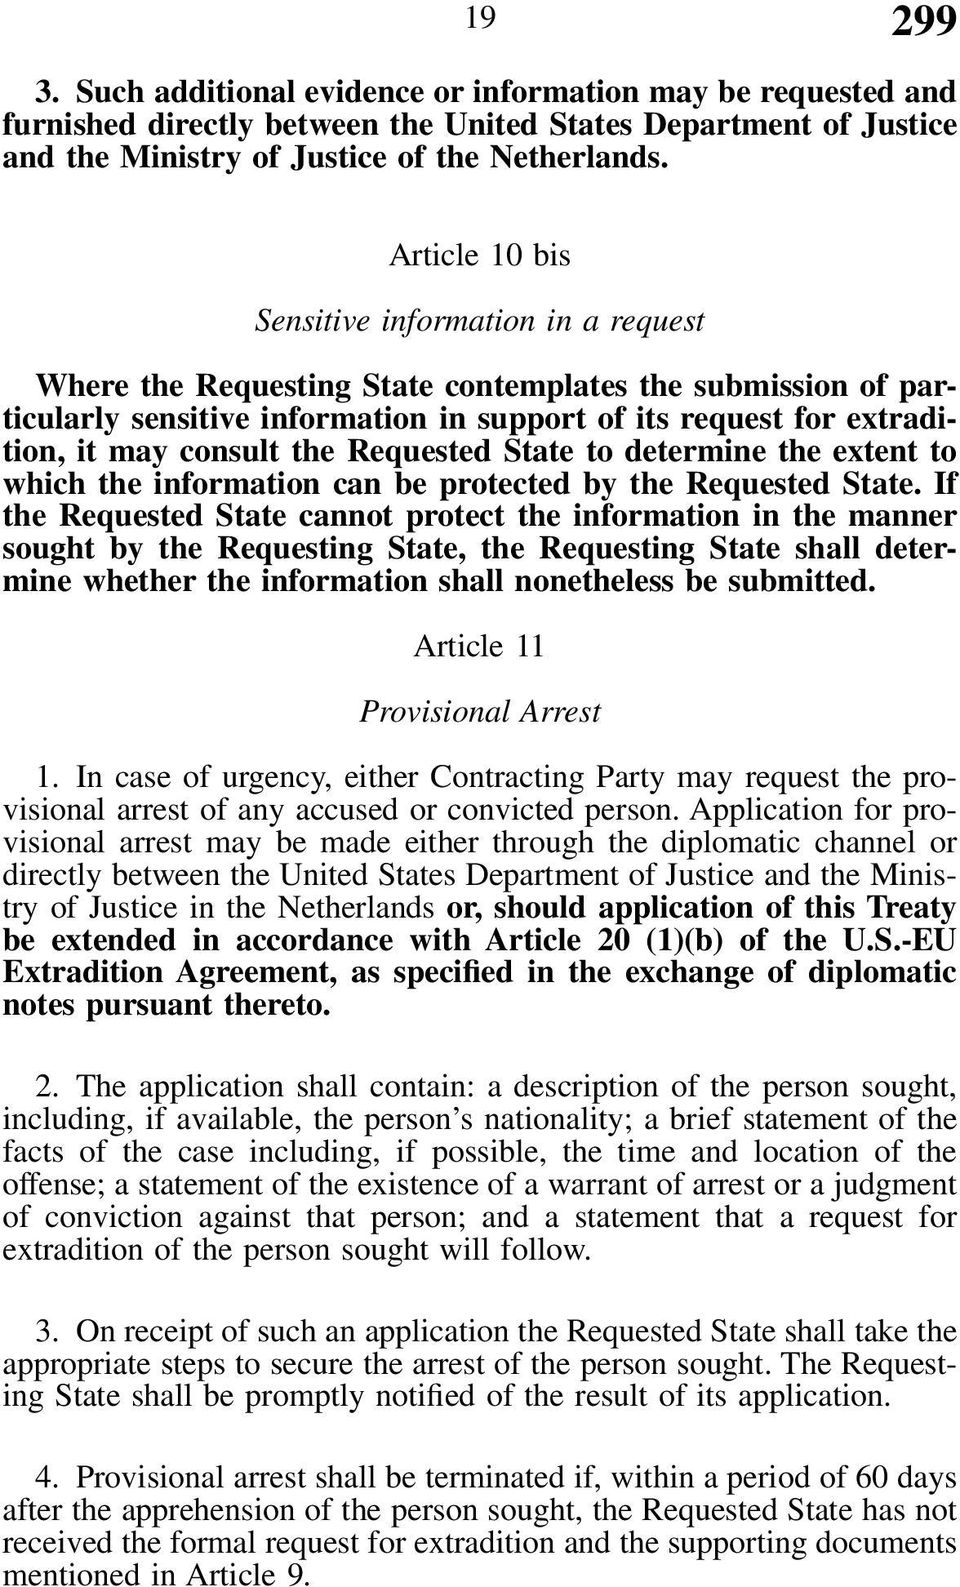 consult the Requested State to determine the extent to which the information can be protected by the Requested State.